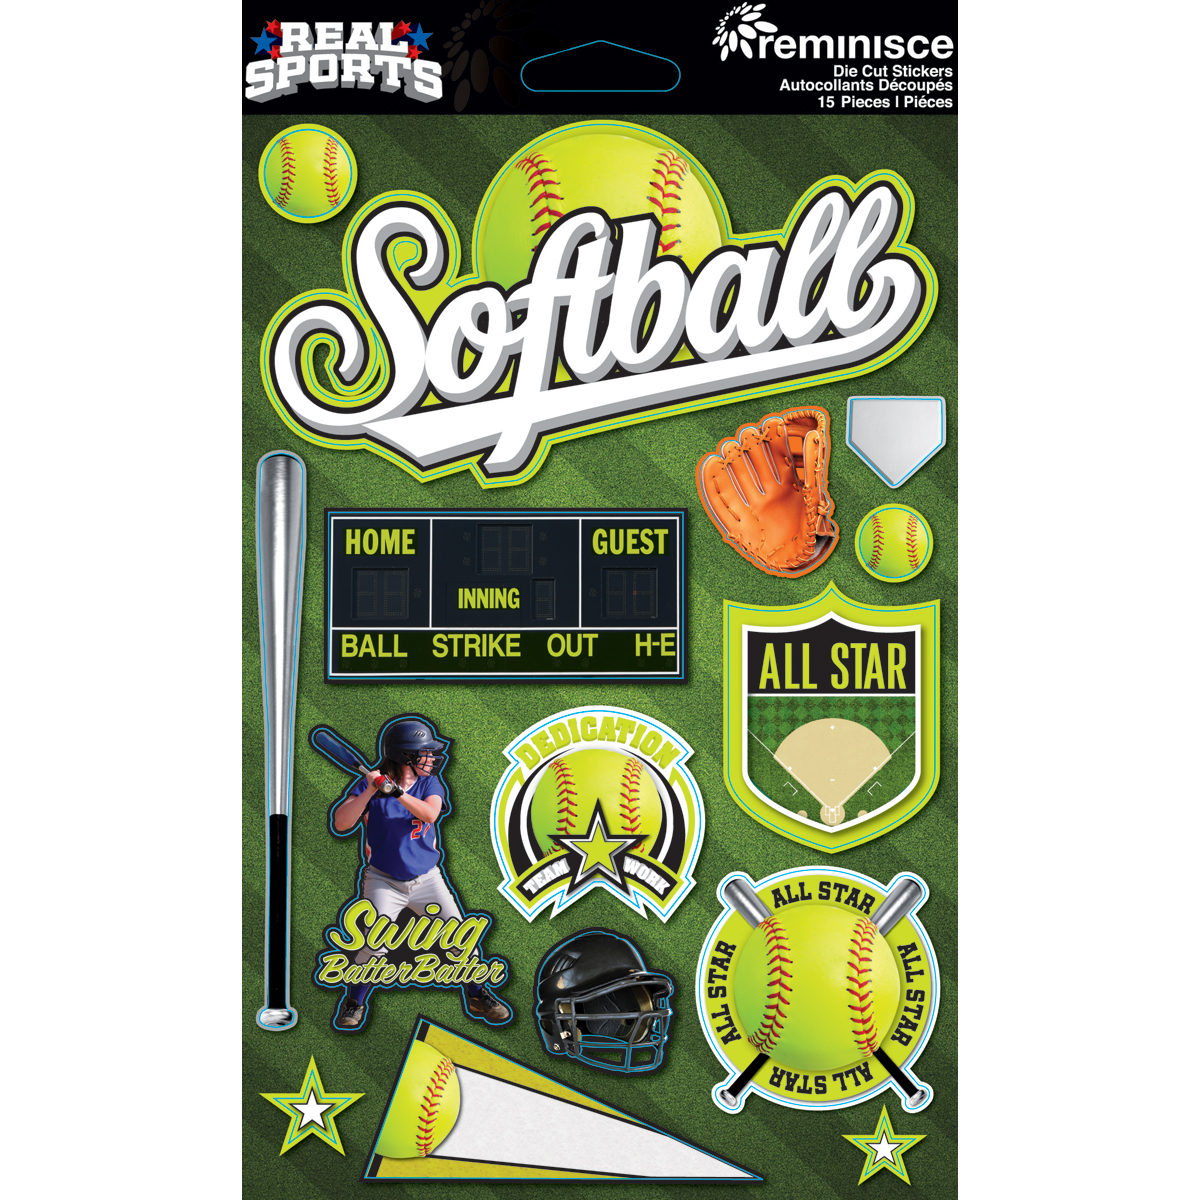 Reminisce Real Sports Dimensional Stickers Softball